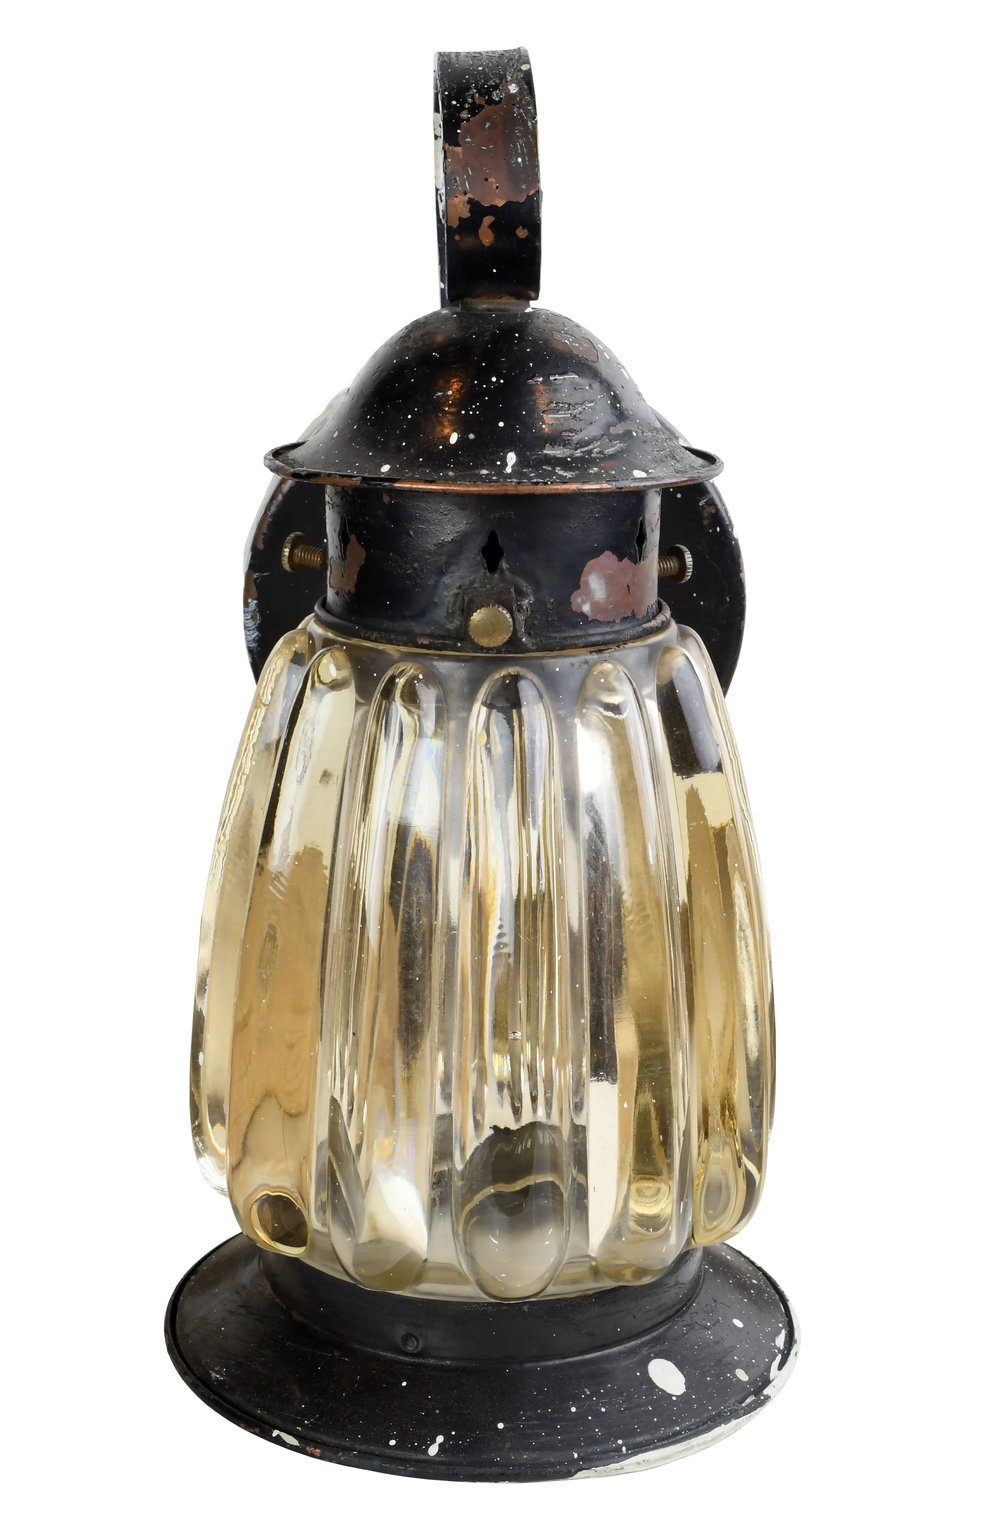 47145-exterior-sconce-with-ribbed-glass-front-view.jpg